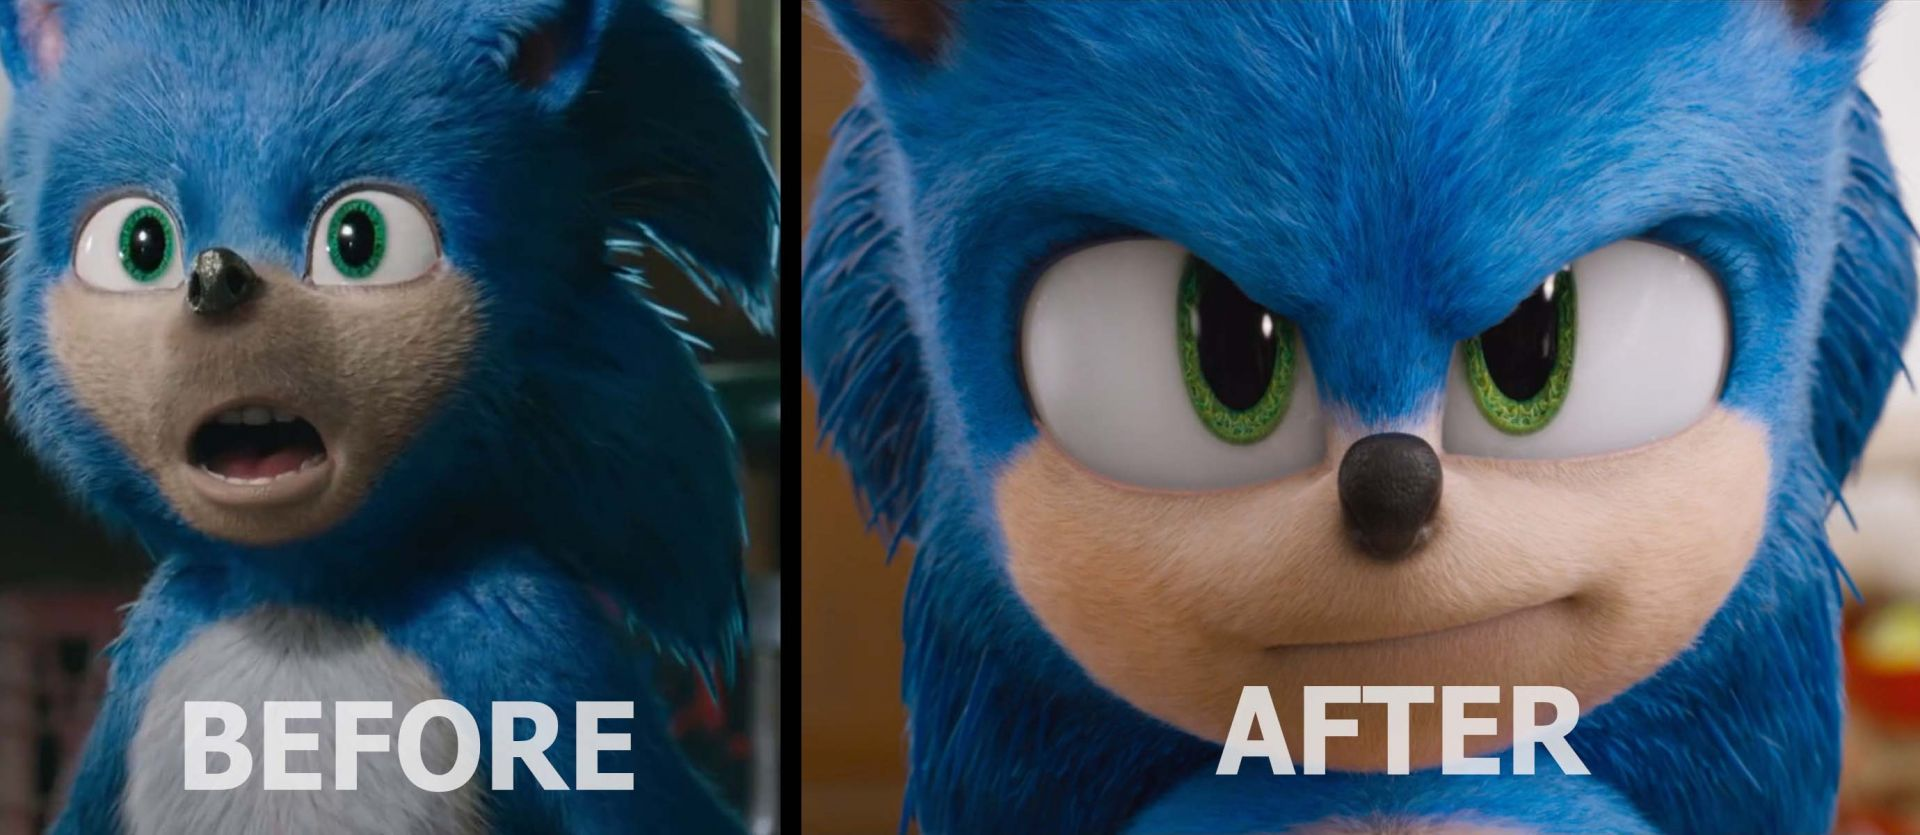 Watch The New Improved Trailer For Sonic The Hedgehog Popcorner Reviews